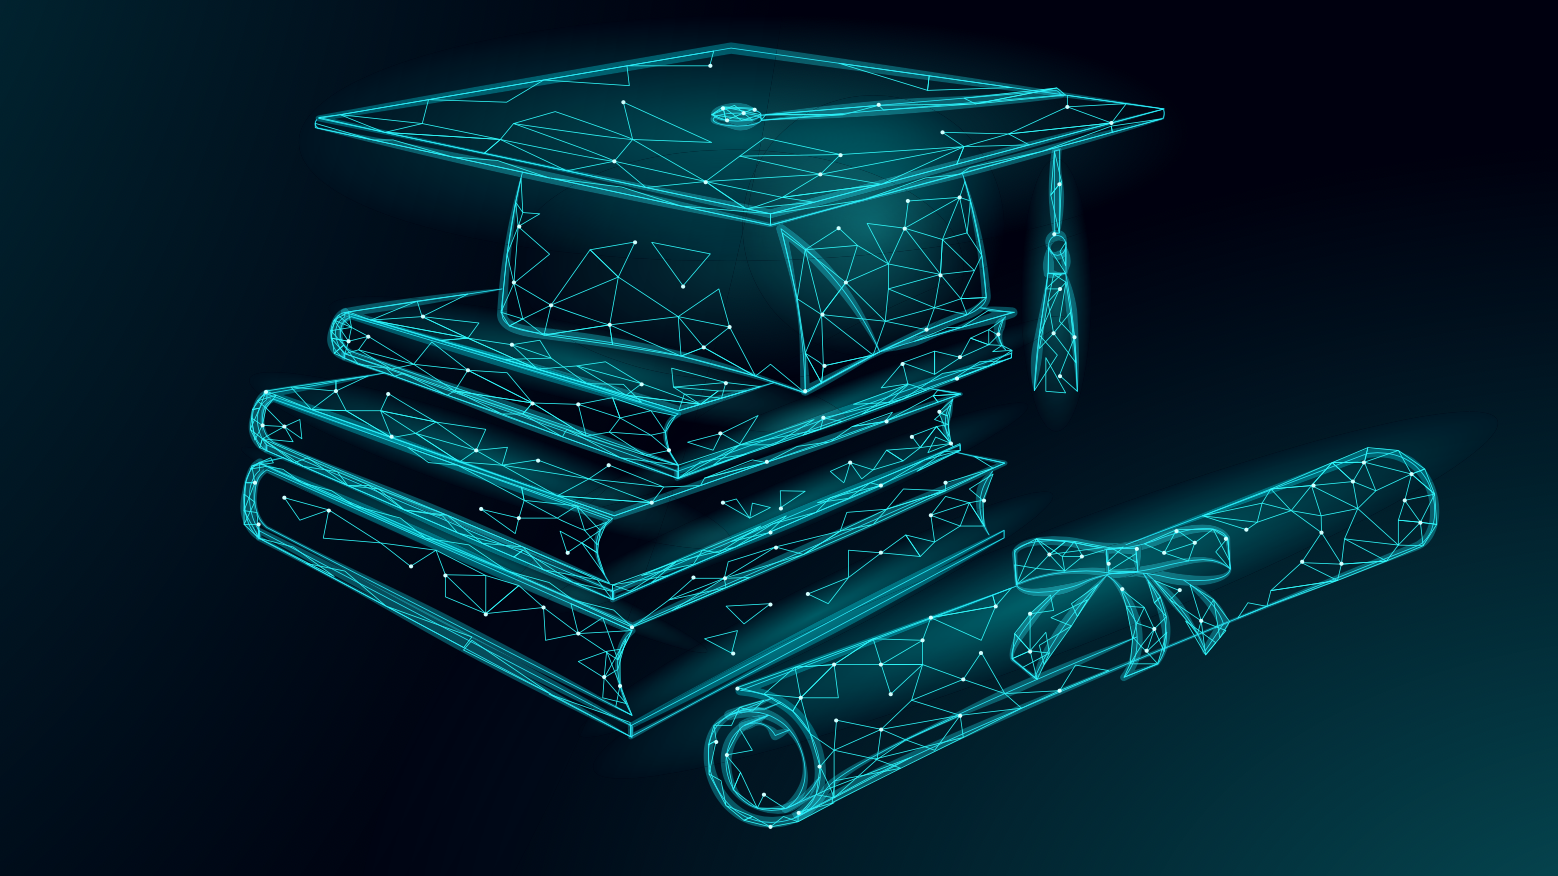 The Disruption of Higher Education and Its Impact on Business